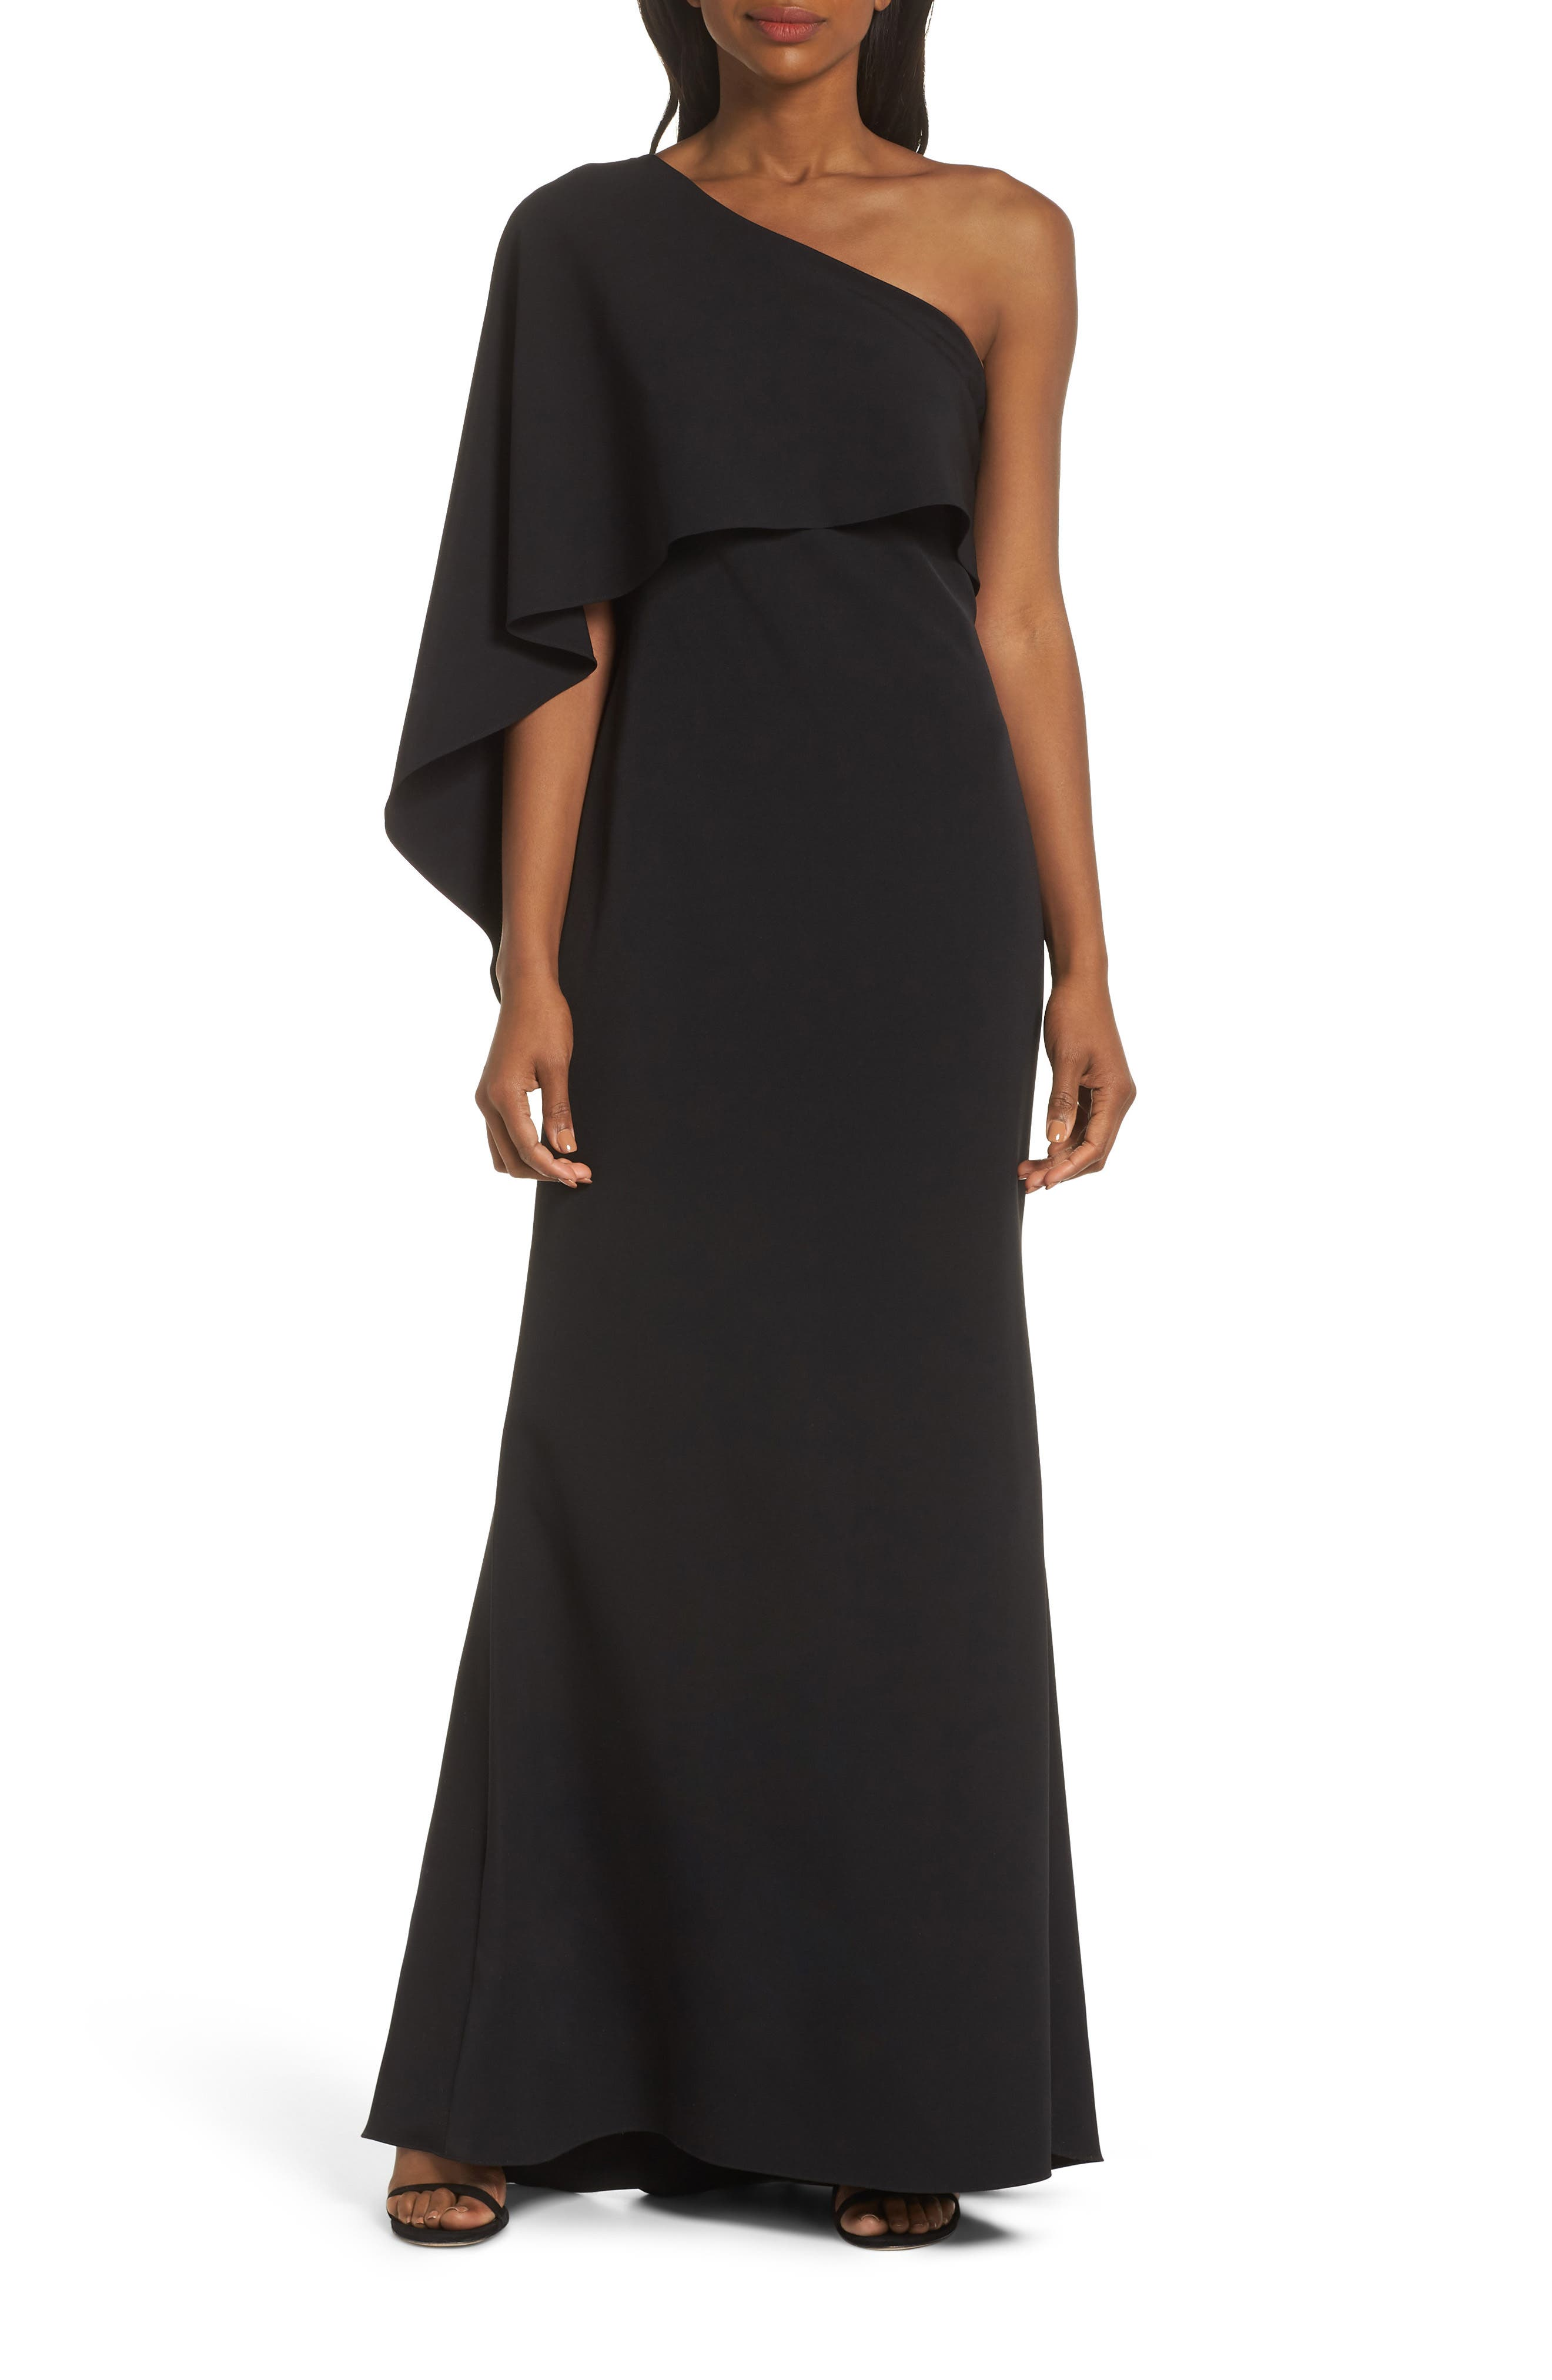 Vince Camuto One-Shoulder Cape Evening Dress